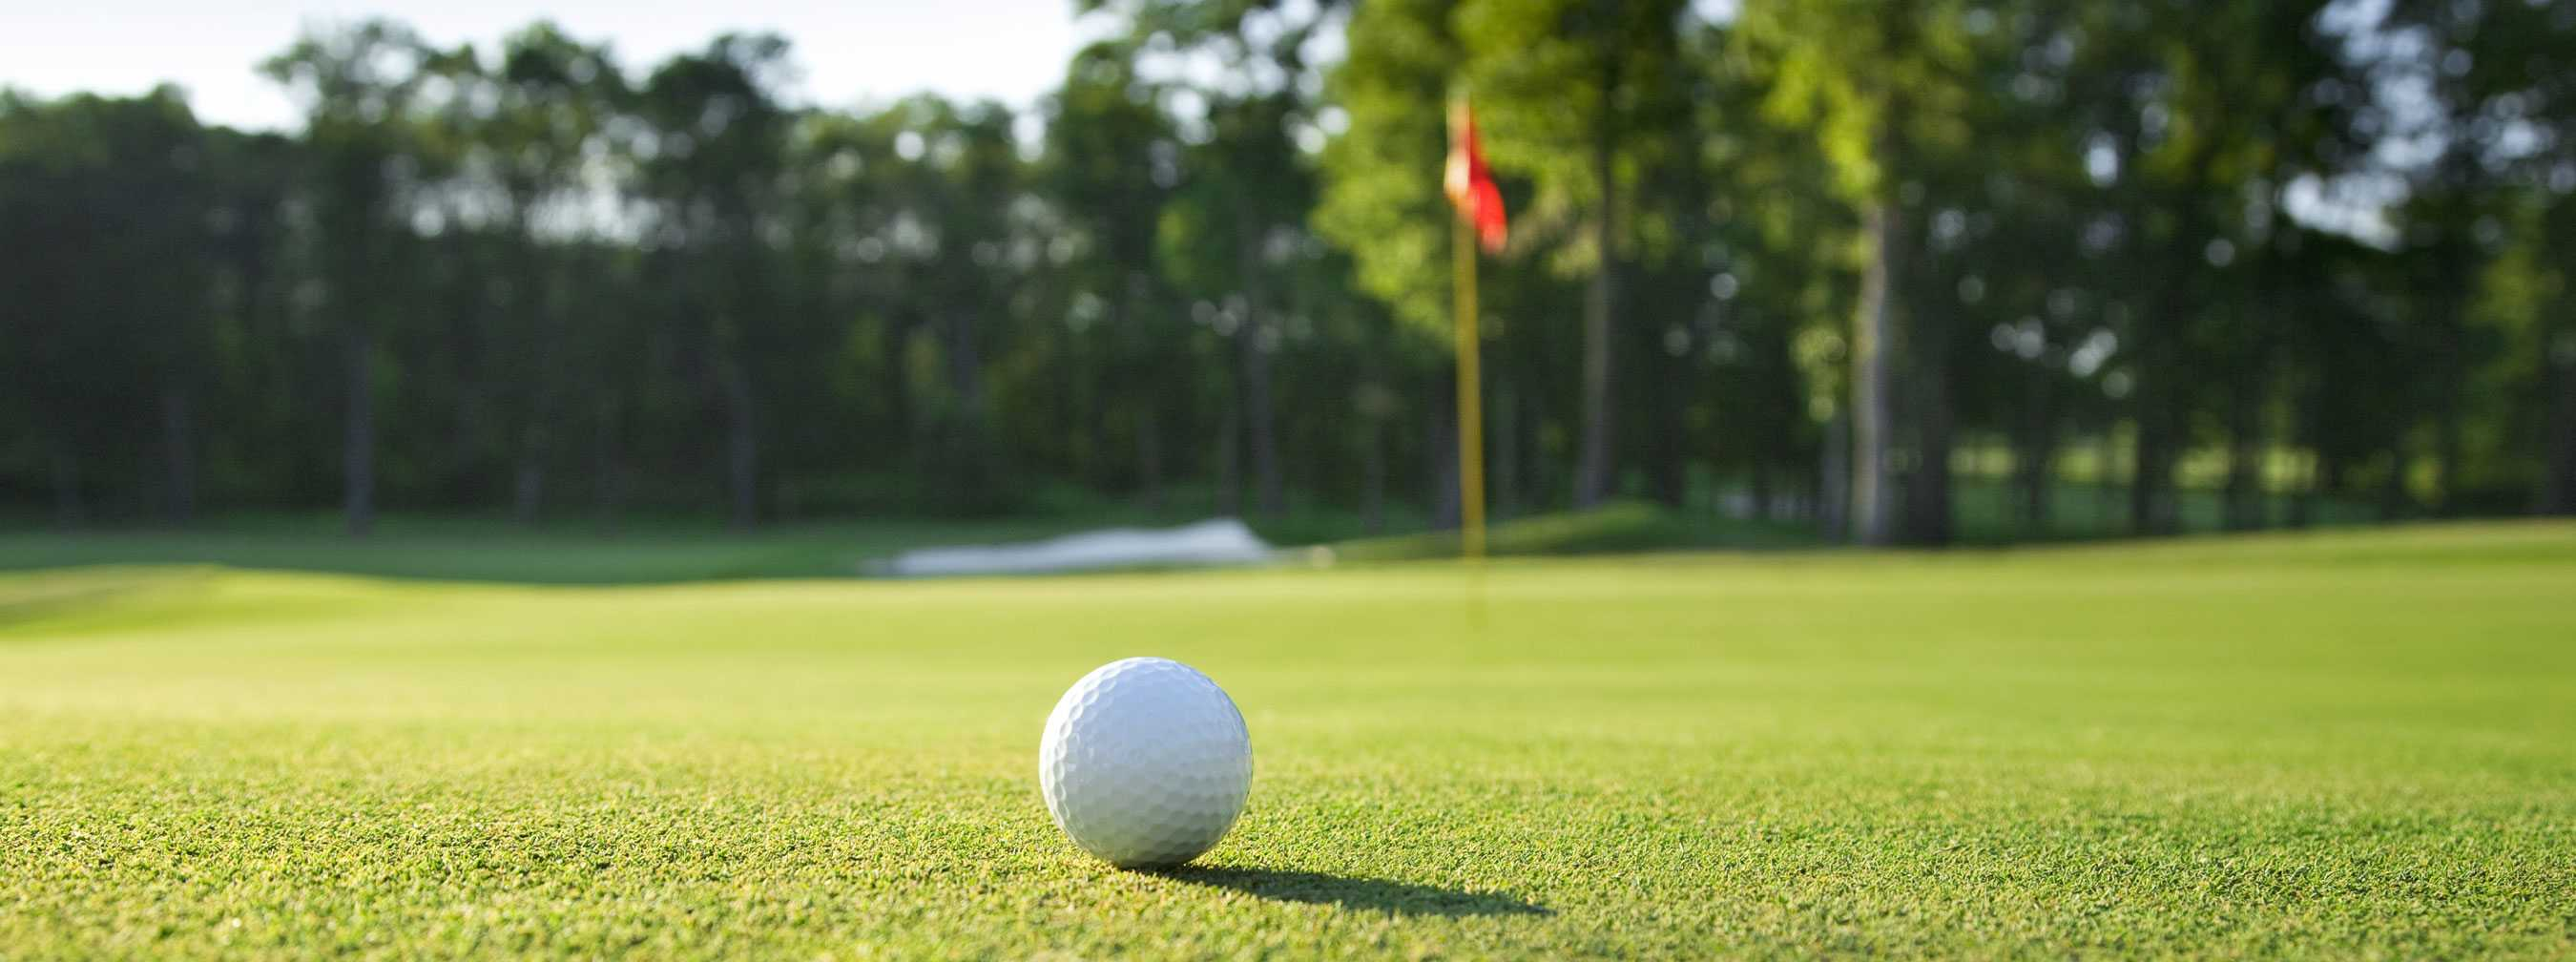 2017 SA Charity Golf Tournament Benefitting Gillette children's specialty Healthcare